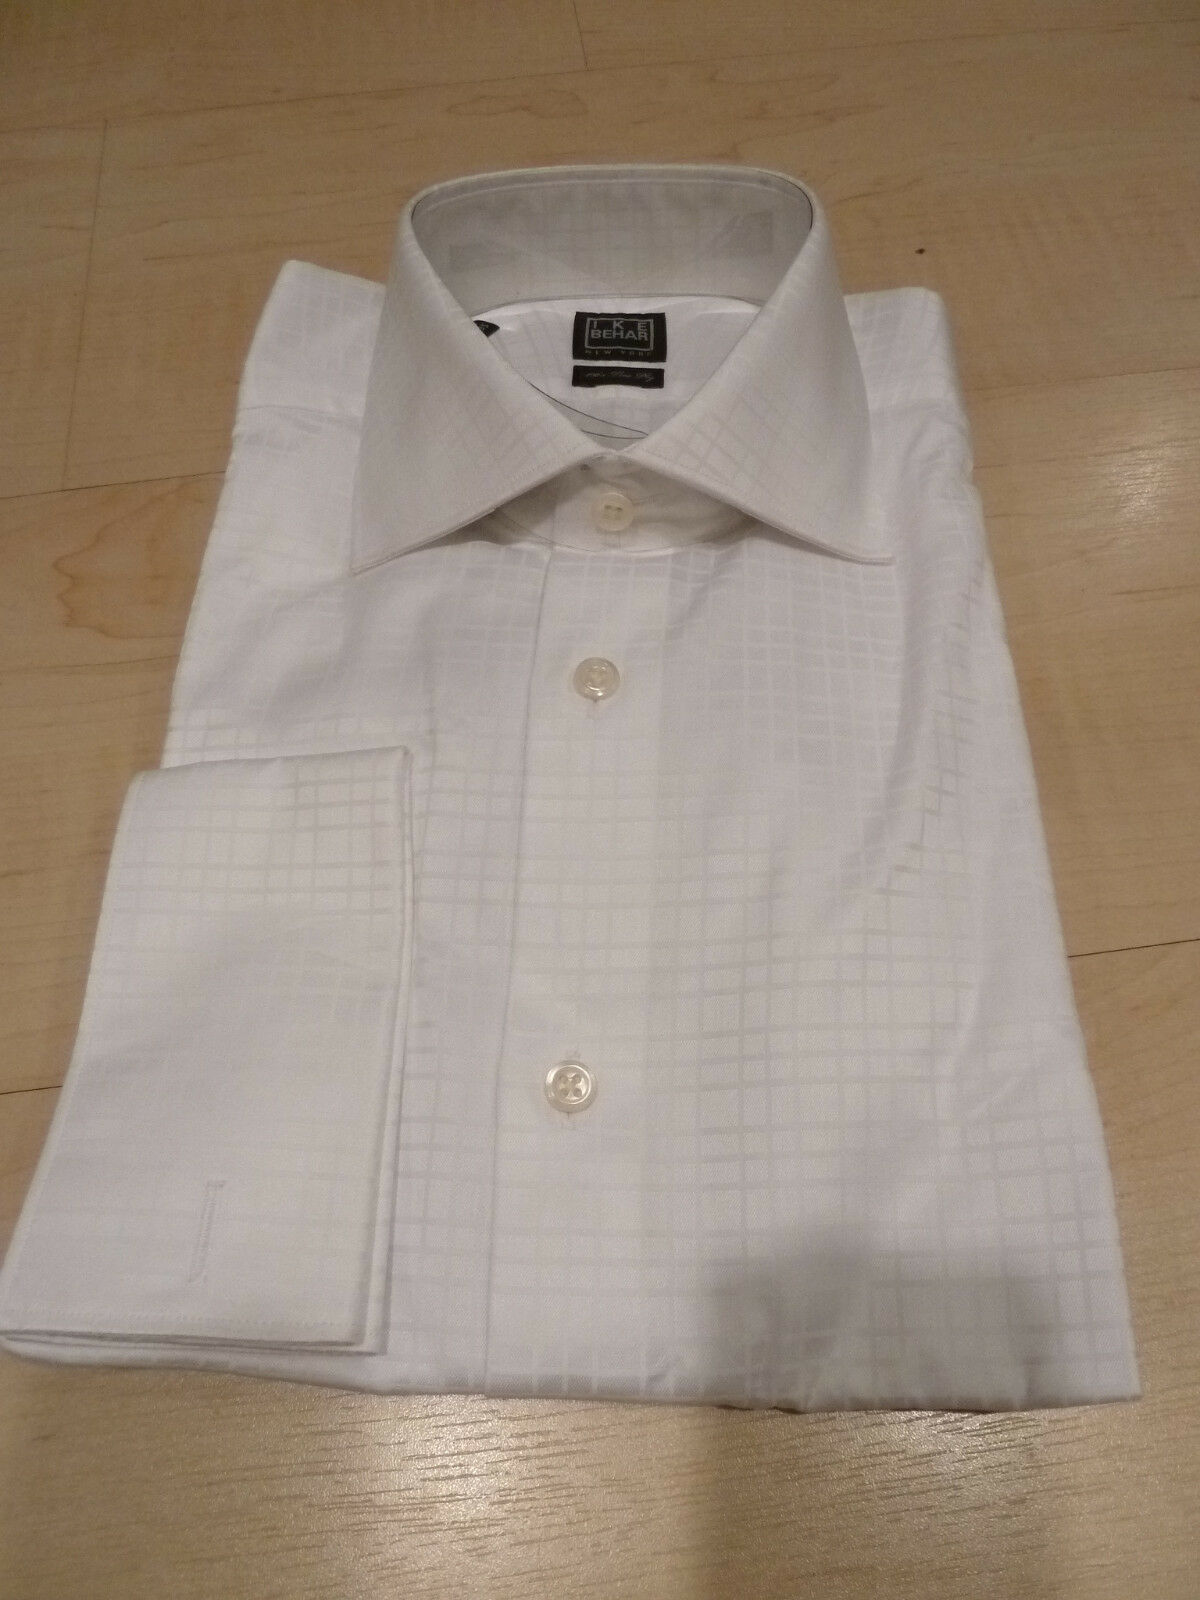 NEW 150+ IKE BEHAR  Herren Dress SHIRT 15.5 34 35 Weiß 100% Cotton FC 120s 2-ply